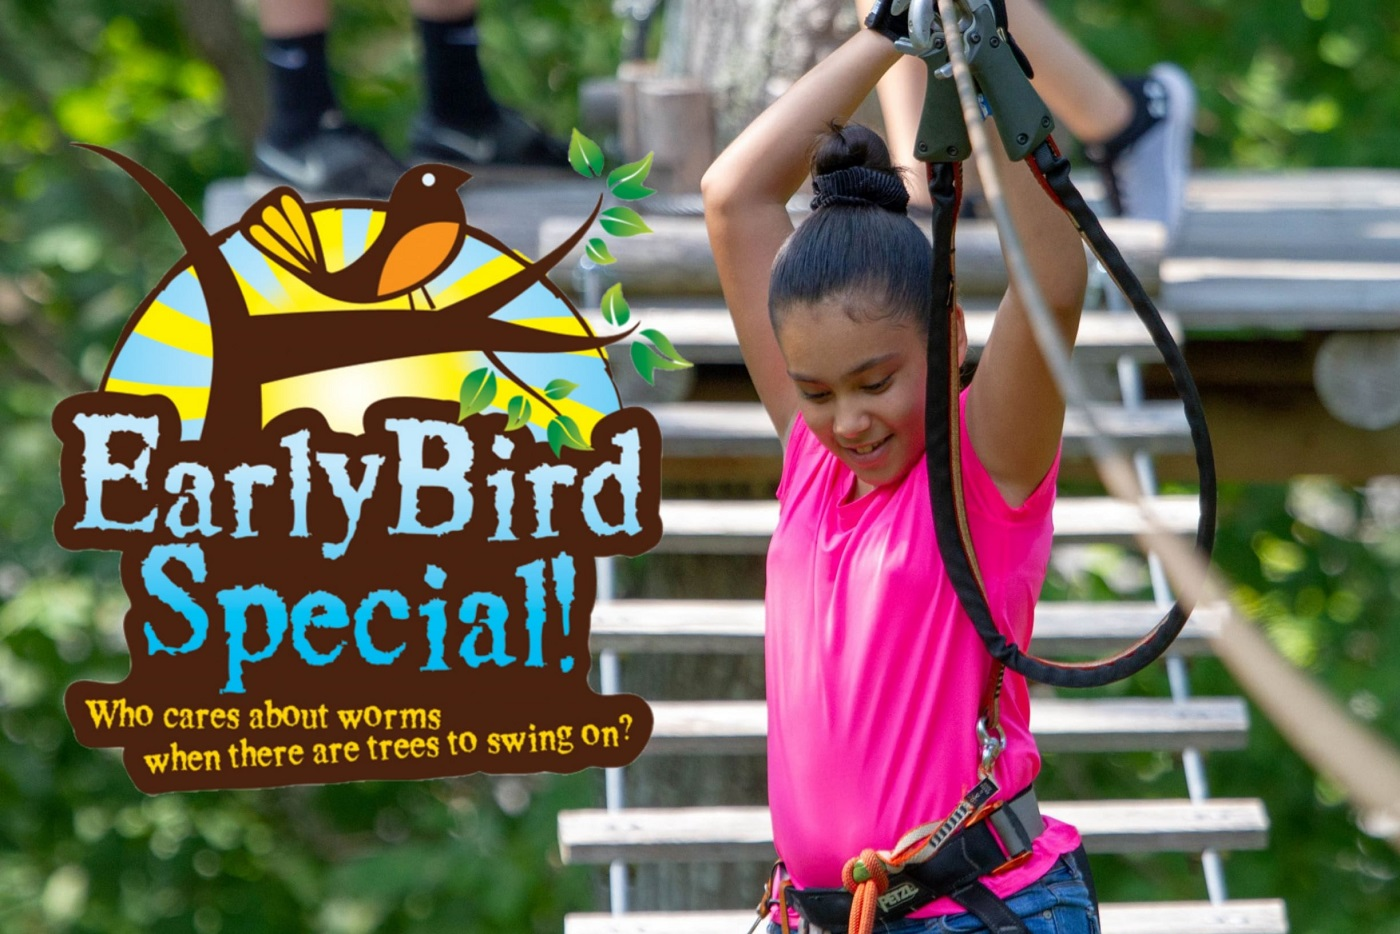 Early Bird Special - Gaston, OR - Tree to Tree Adventure Park